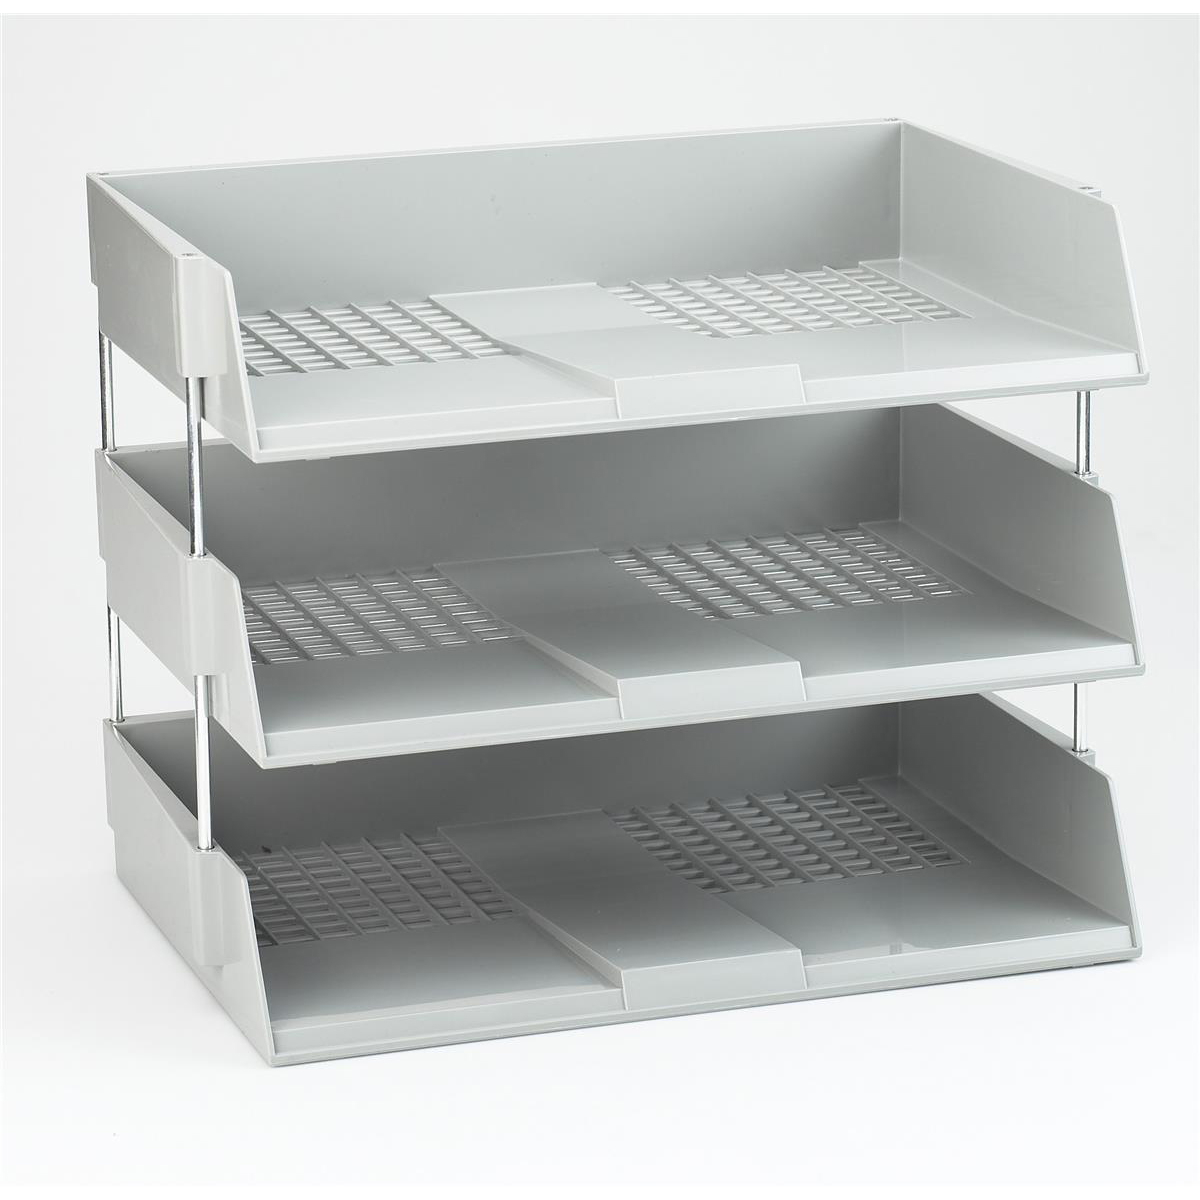 Desktop trays or organizers Avery Wide Entry Filing Tray W367xD254xH63mm Light Grey Ref W44LGRY